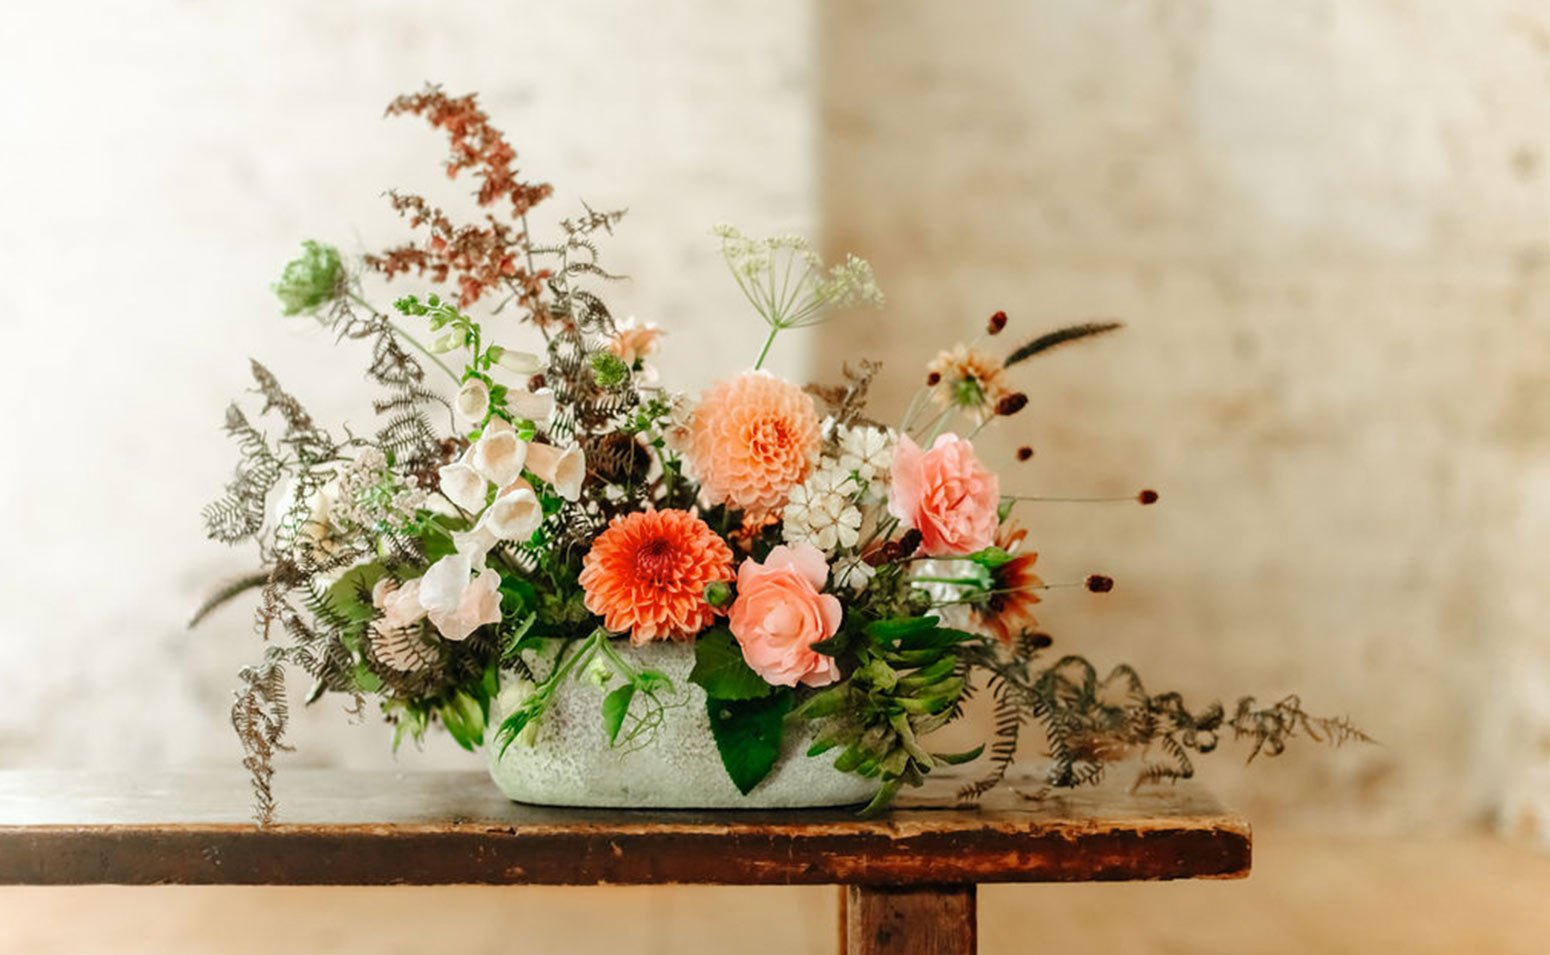 An arrangement of seasonal British flowers in shades of peach sat on a bench